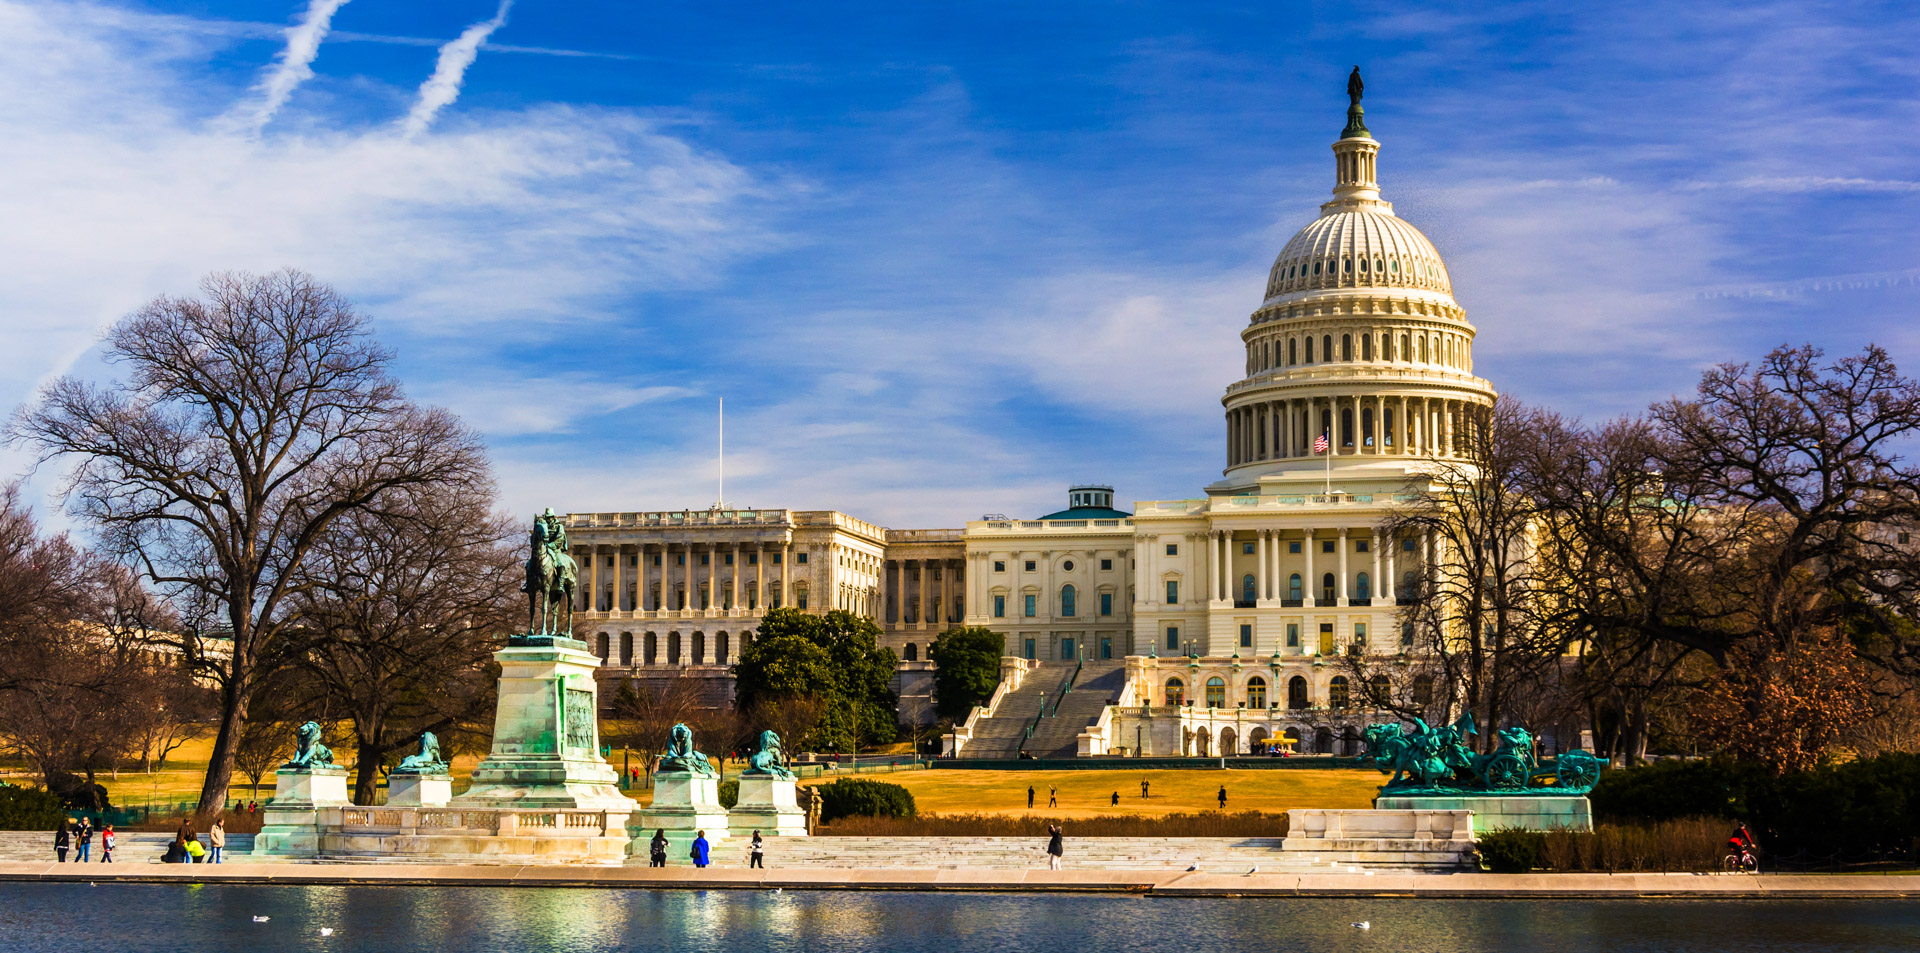 The U.S. Capitol building in autumn